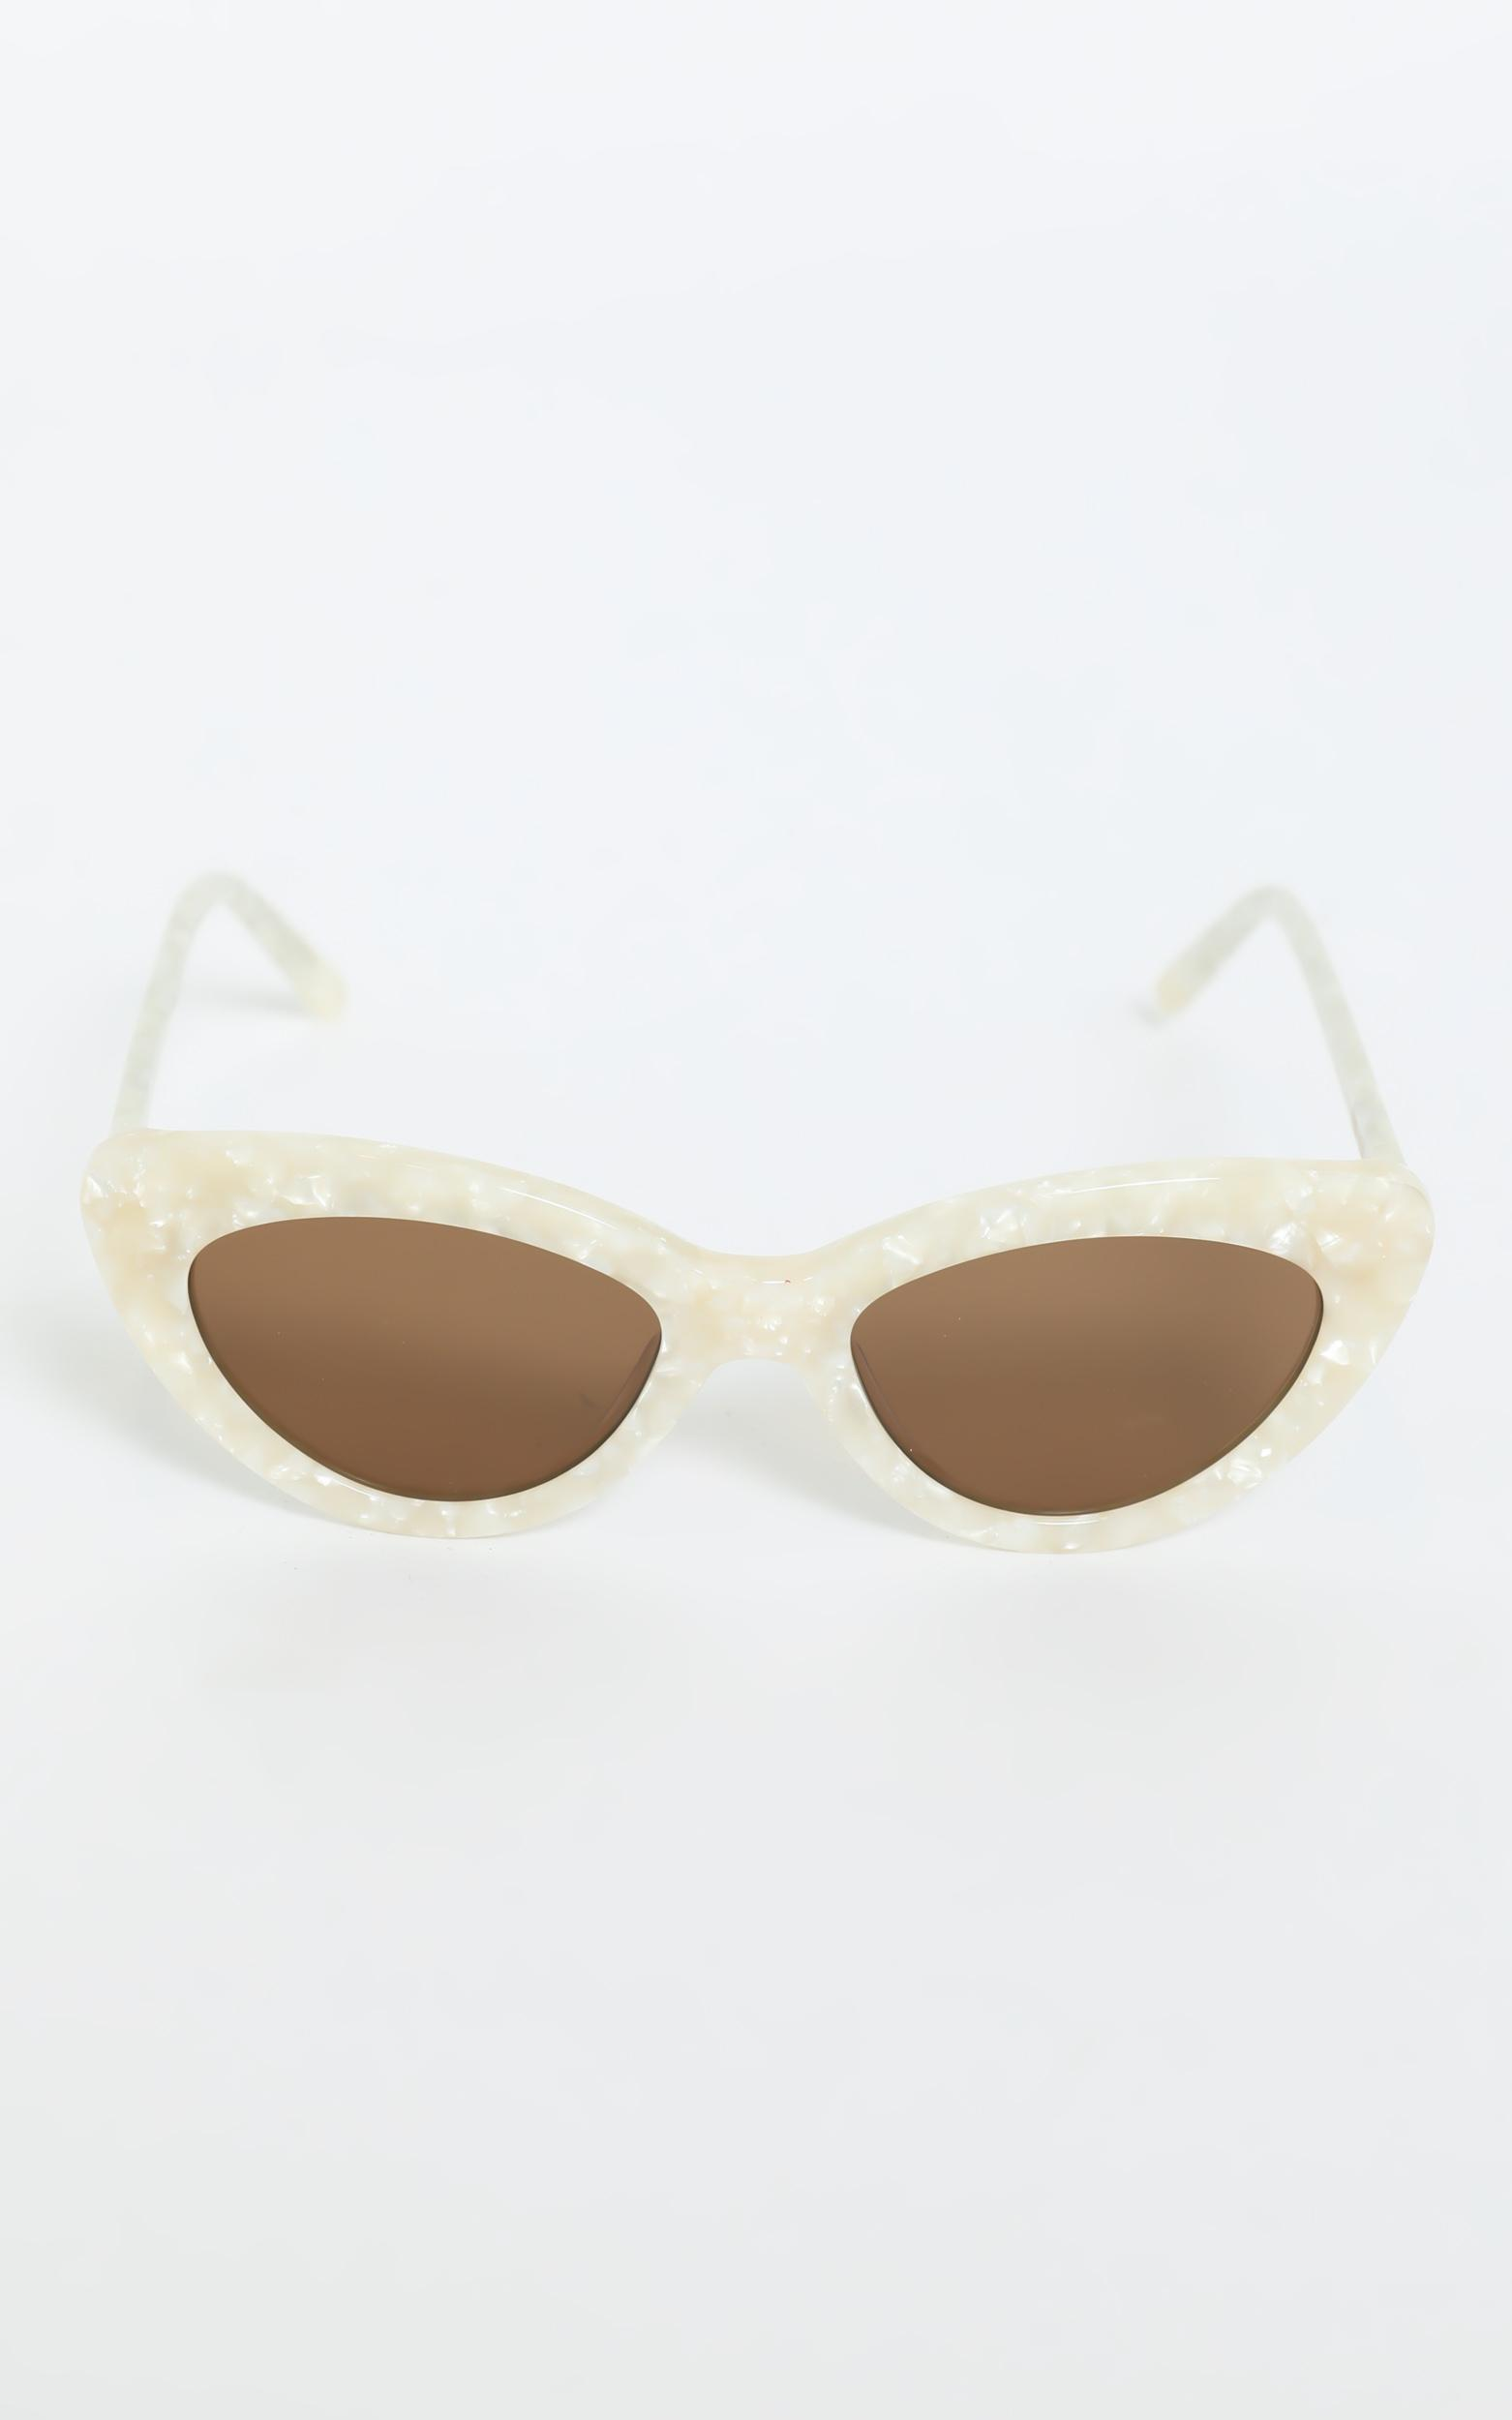 Luv Lou - The Harley Sunglasses in Tort, NEU1, hi-res image number null